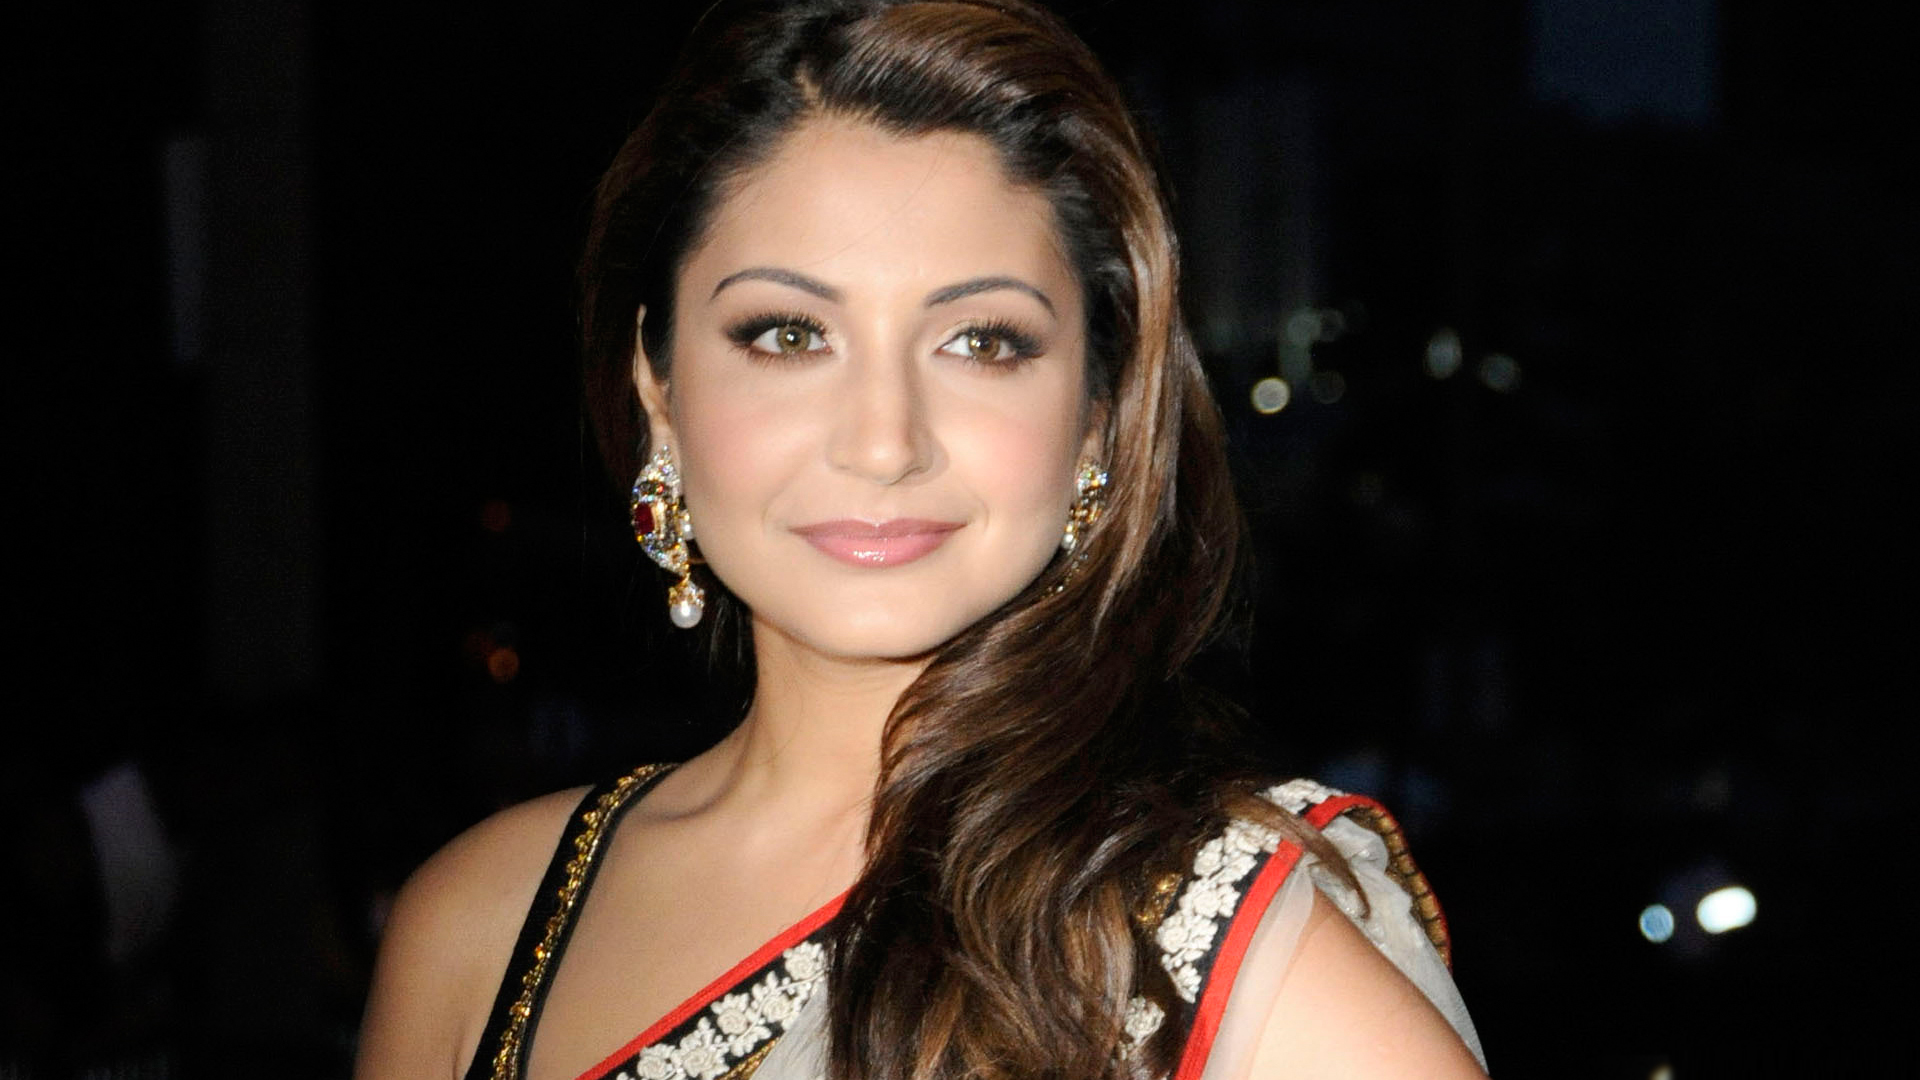 Anushka Sharma scores over six million fan following on Twitter